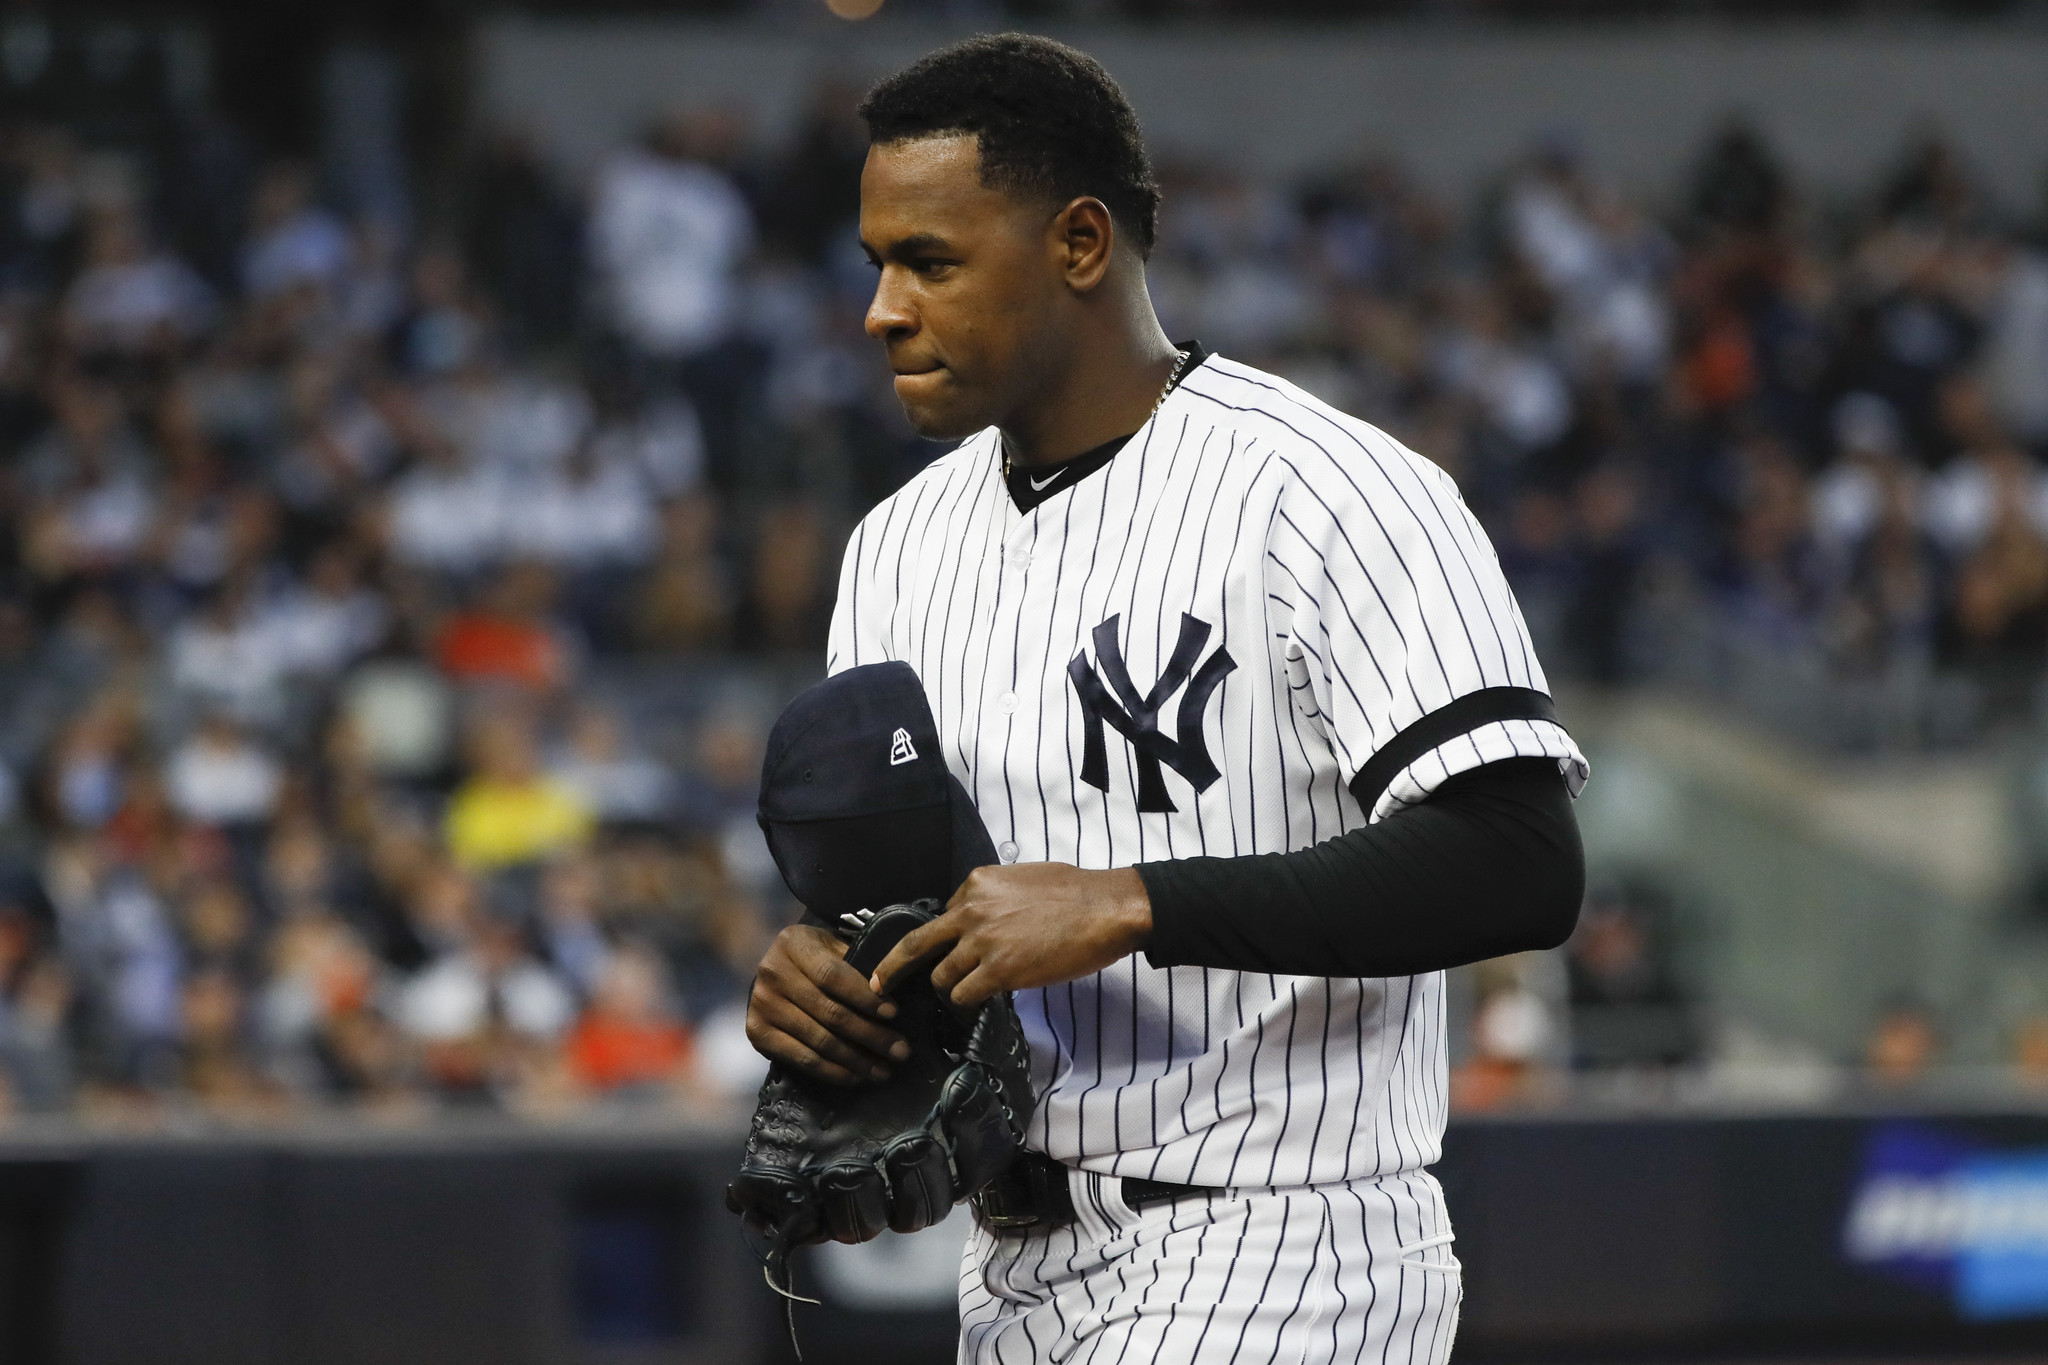 The Yankees signed Luis Severino to a good contract